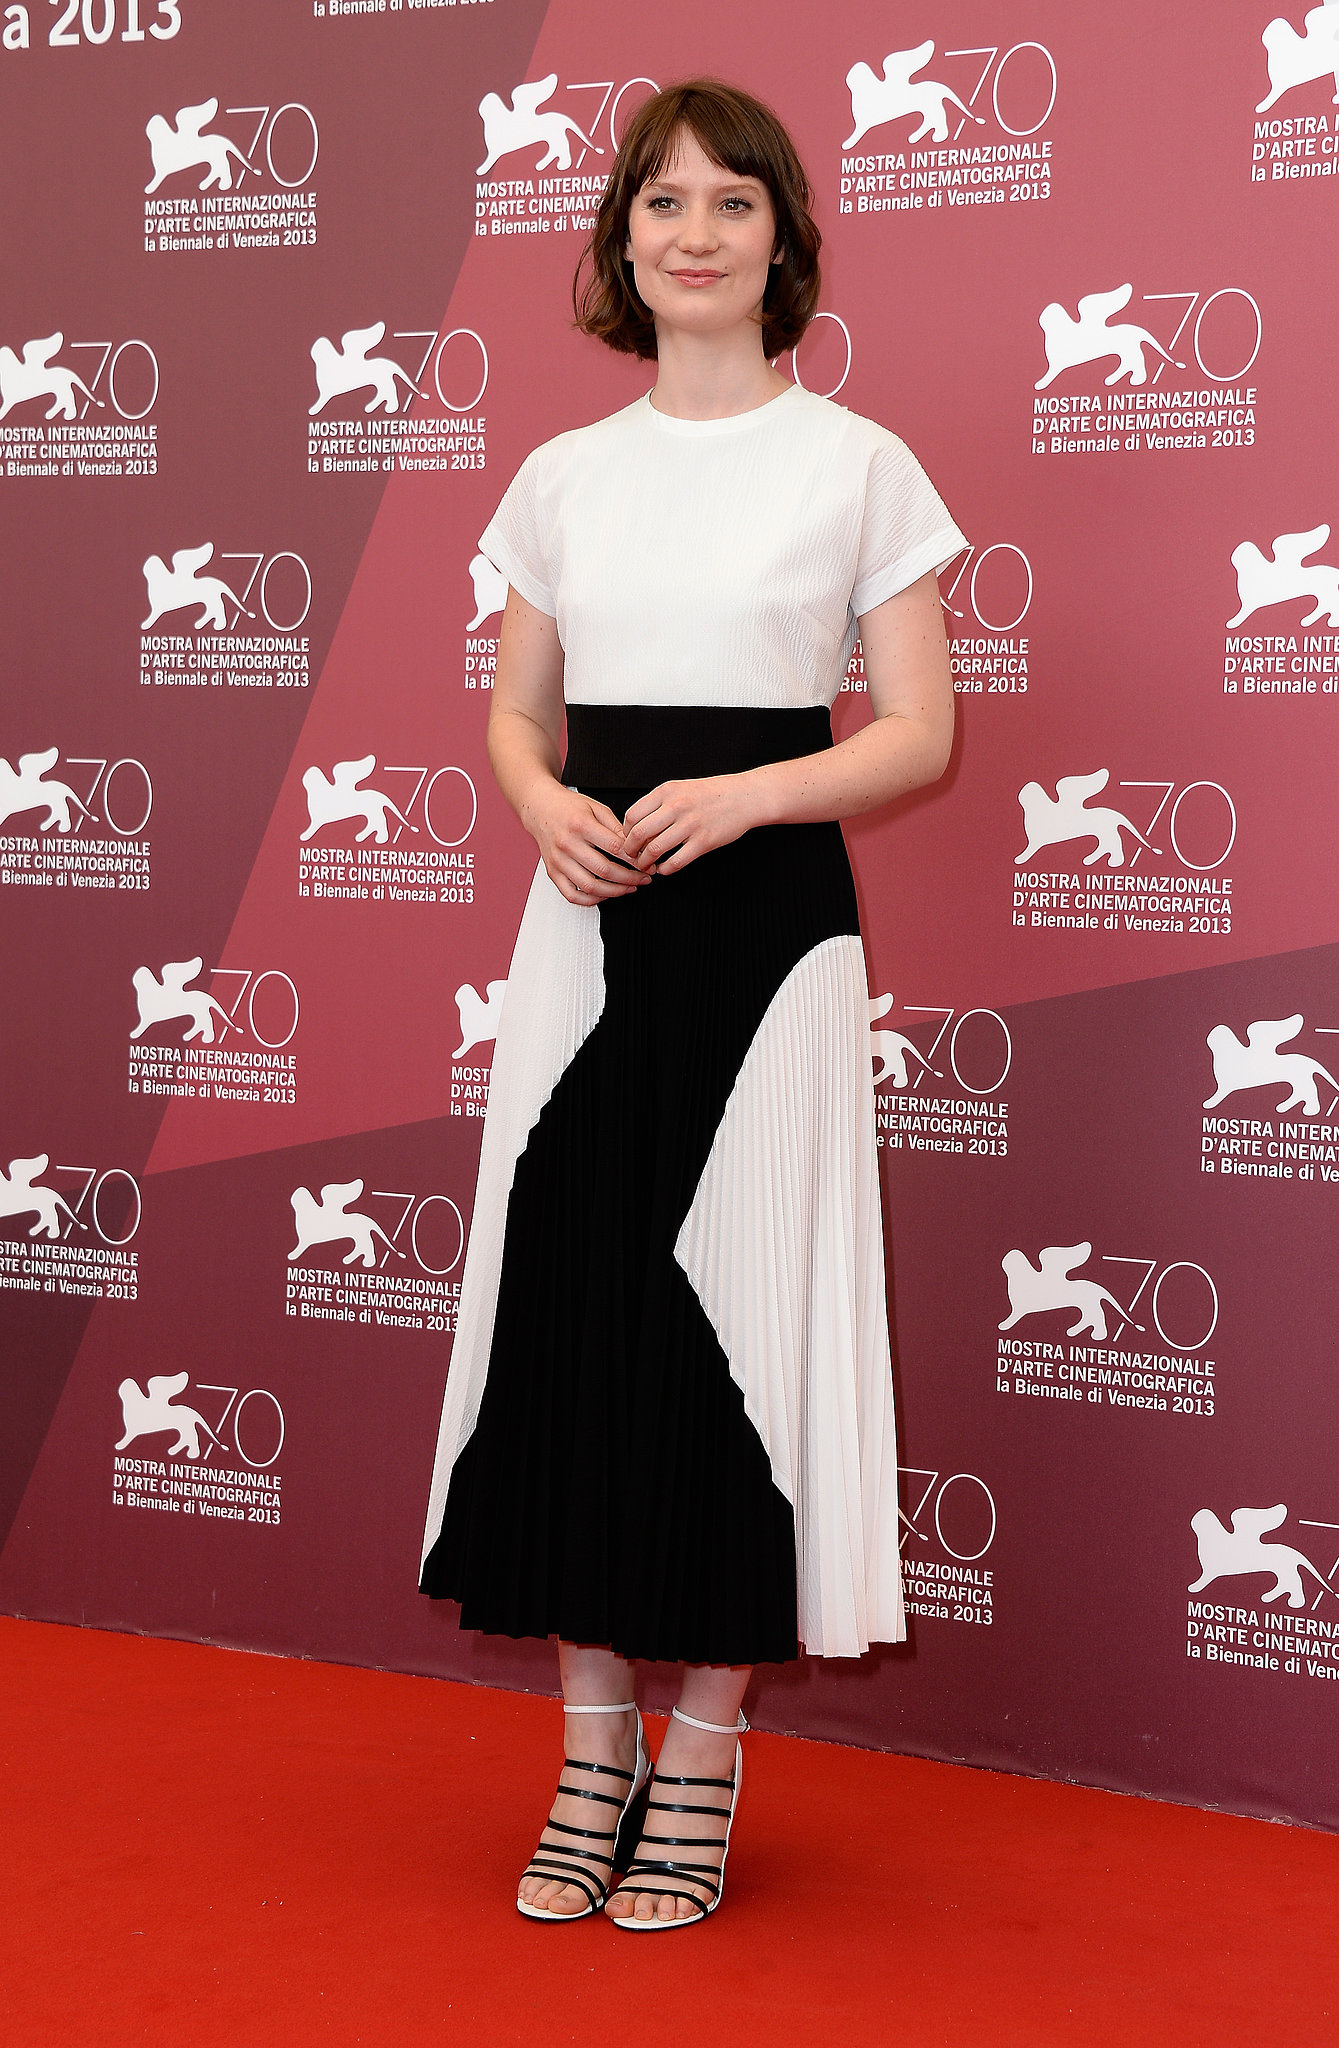 At the Venice Film Festival premiere of Tracks, Mia Wasikowska paired Proenza Schouler's cloque dress with strappy sandals.